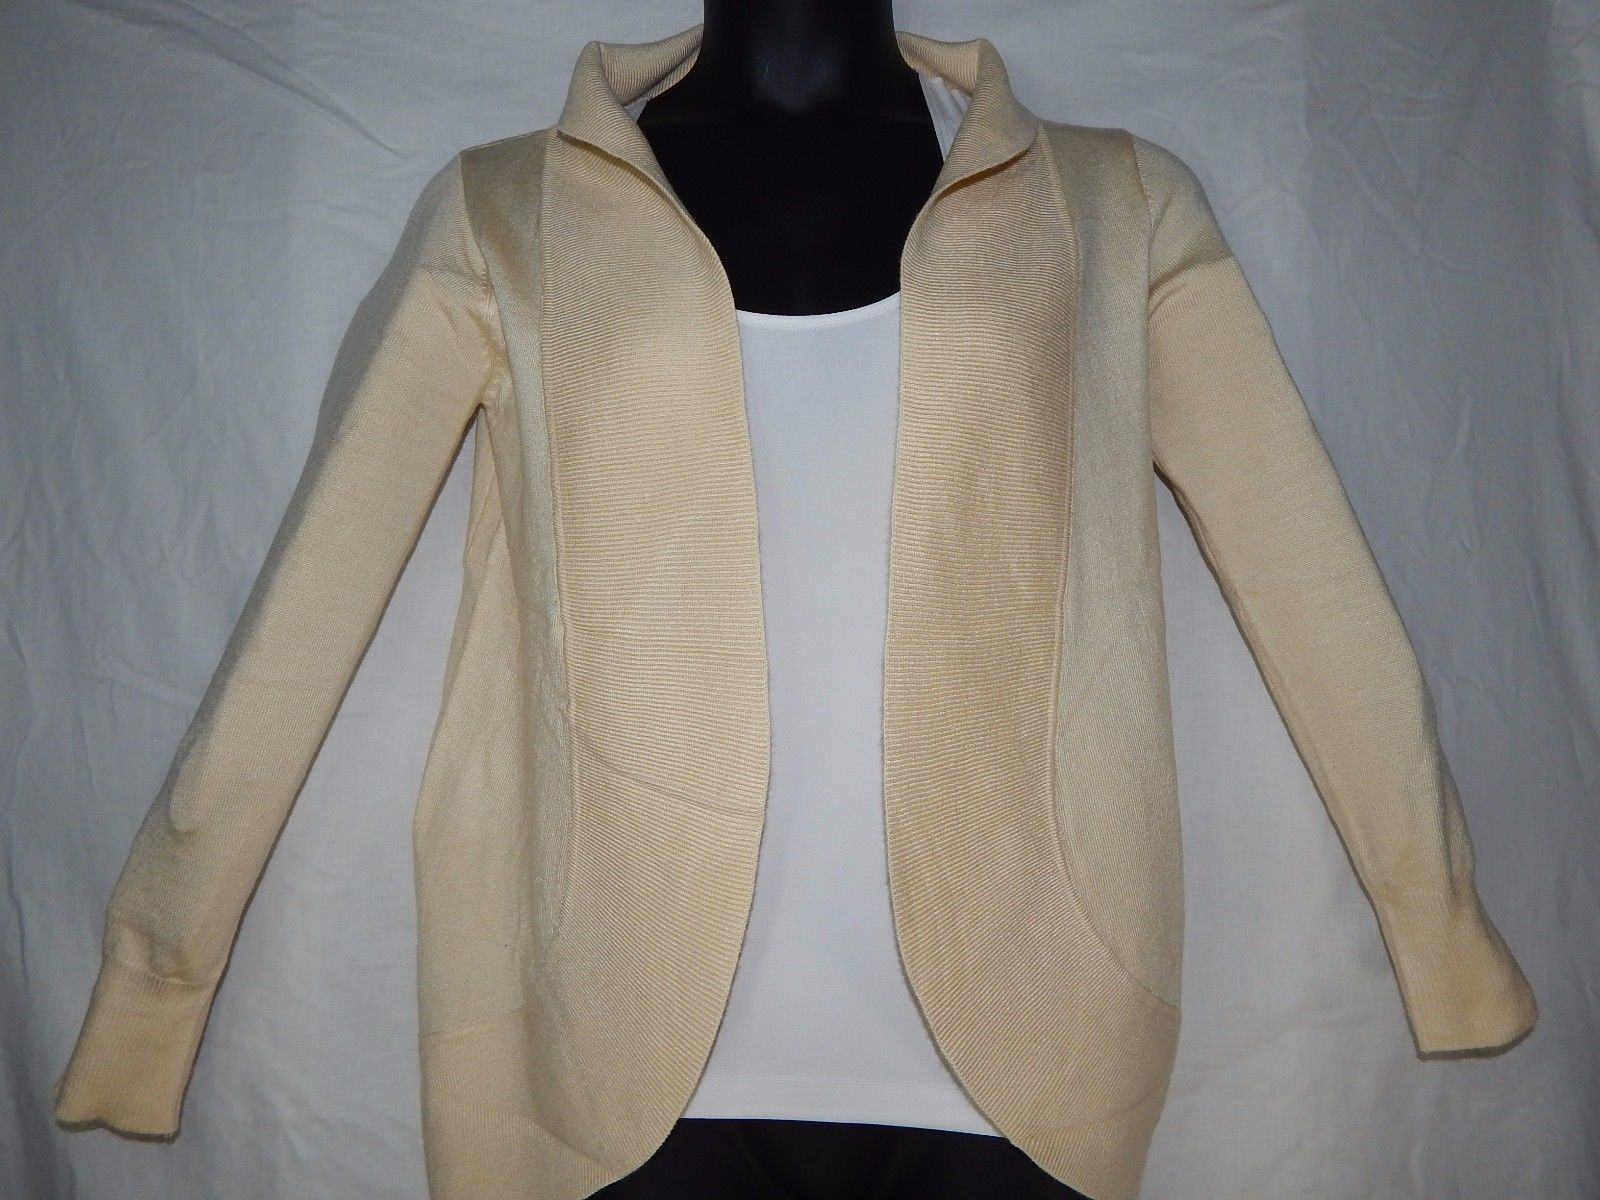 Wear Freedom Small Cardigan Sweater Beige Long Sleeve